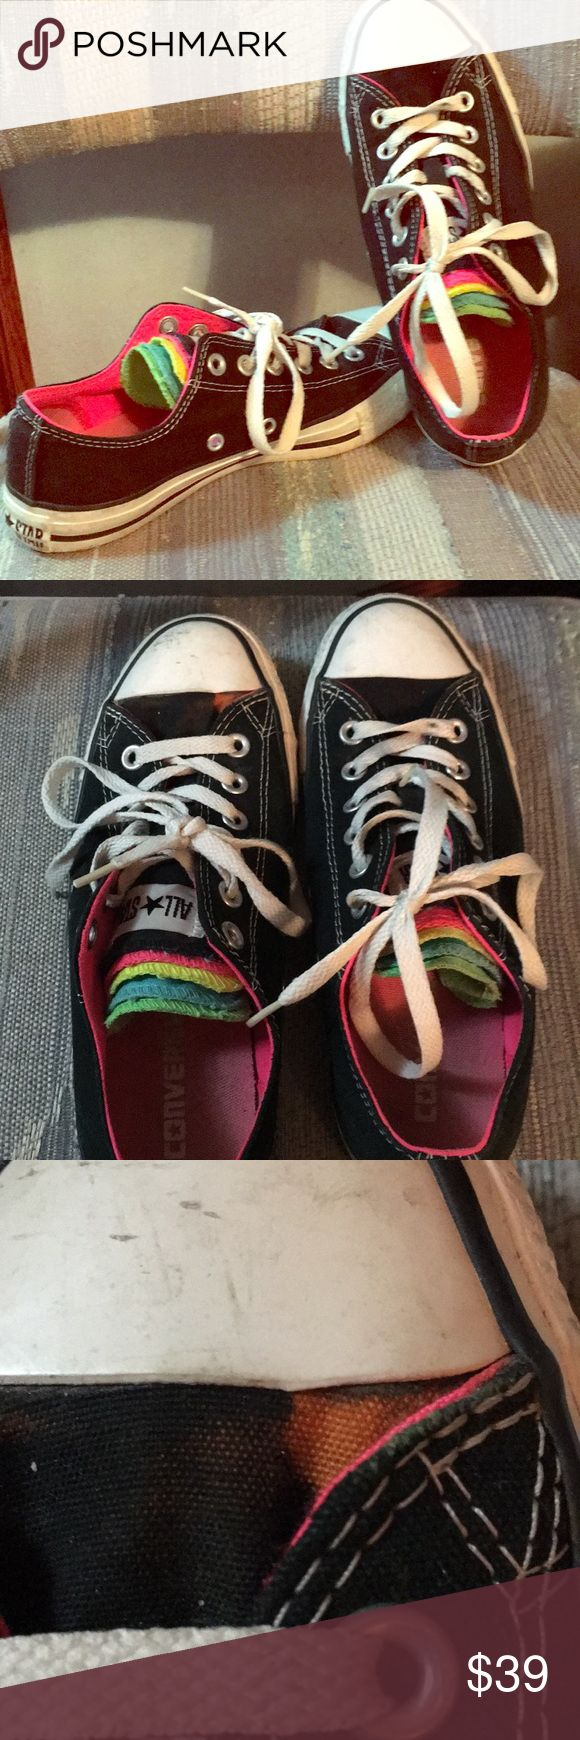 🌈 Rainbow Chucks Gently loved rainbow layered tongue on classic black and white. Totally Avril. Think Spring. Small bleach mark on left upper canvas. Not very prominent since it's next to the hot pink piping. See photo. Either way bleach spots are totally Chuck!  Size 5 kids = 7 / 7.5 women's Converse Shoes Sneakers